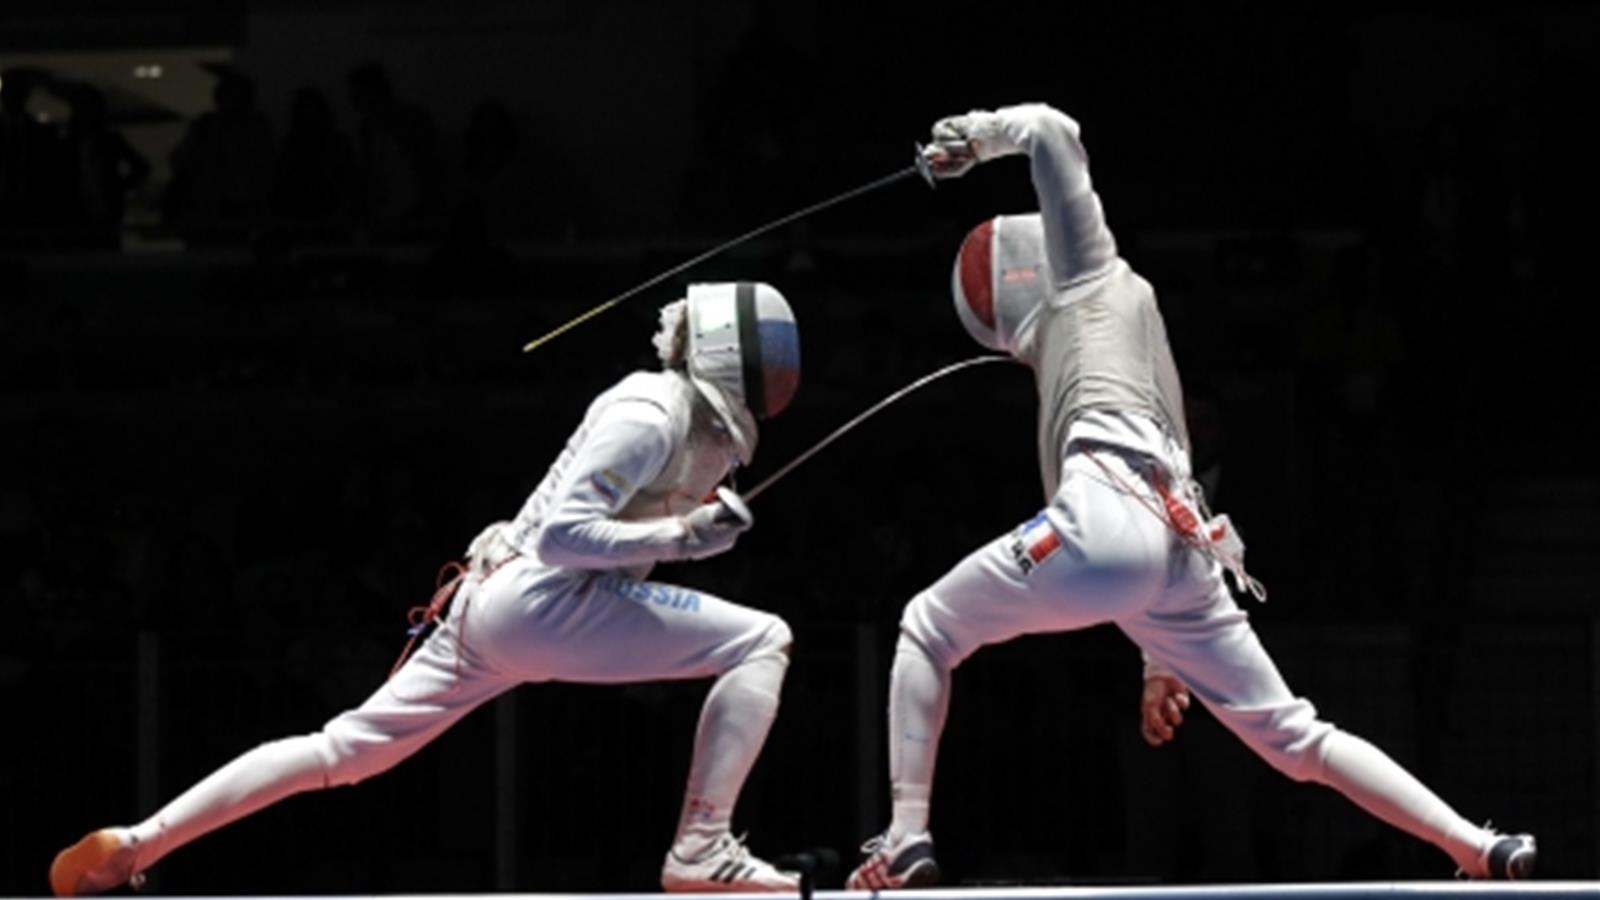 Amsterdam and Belgrade host exciting weekend of fencing competitions - Fencing - Eurosport